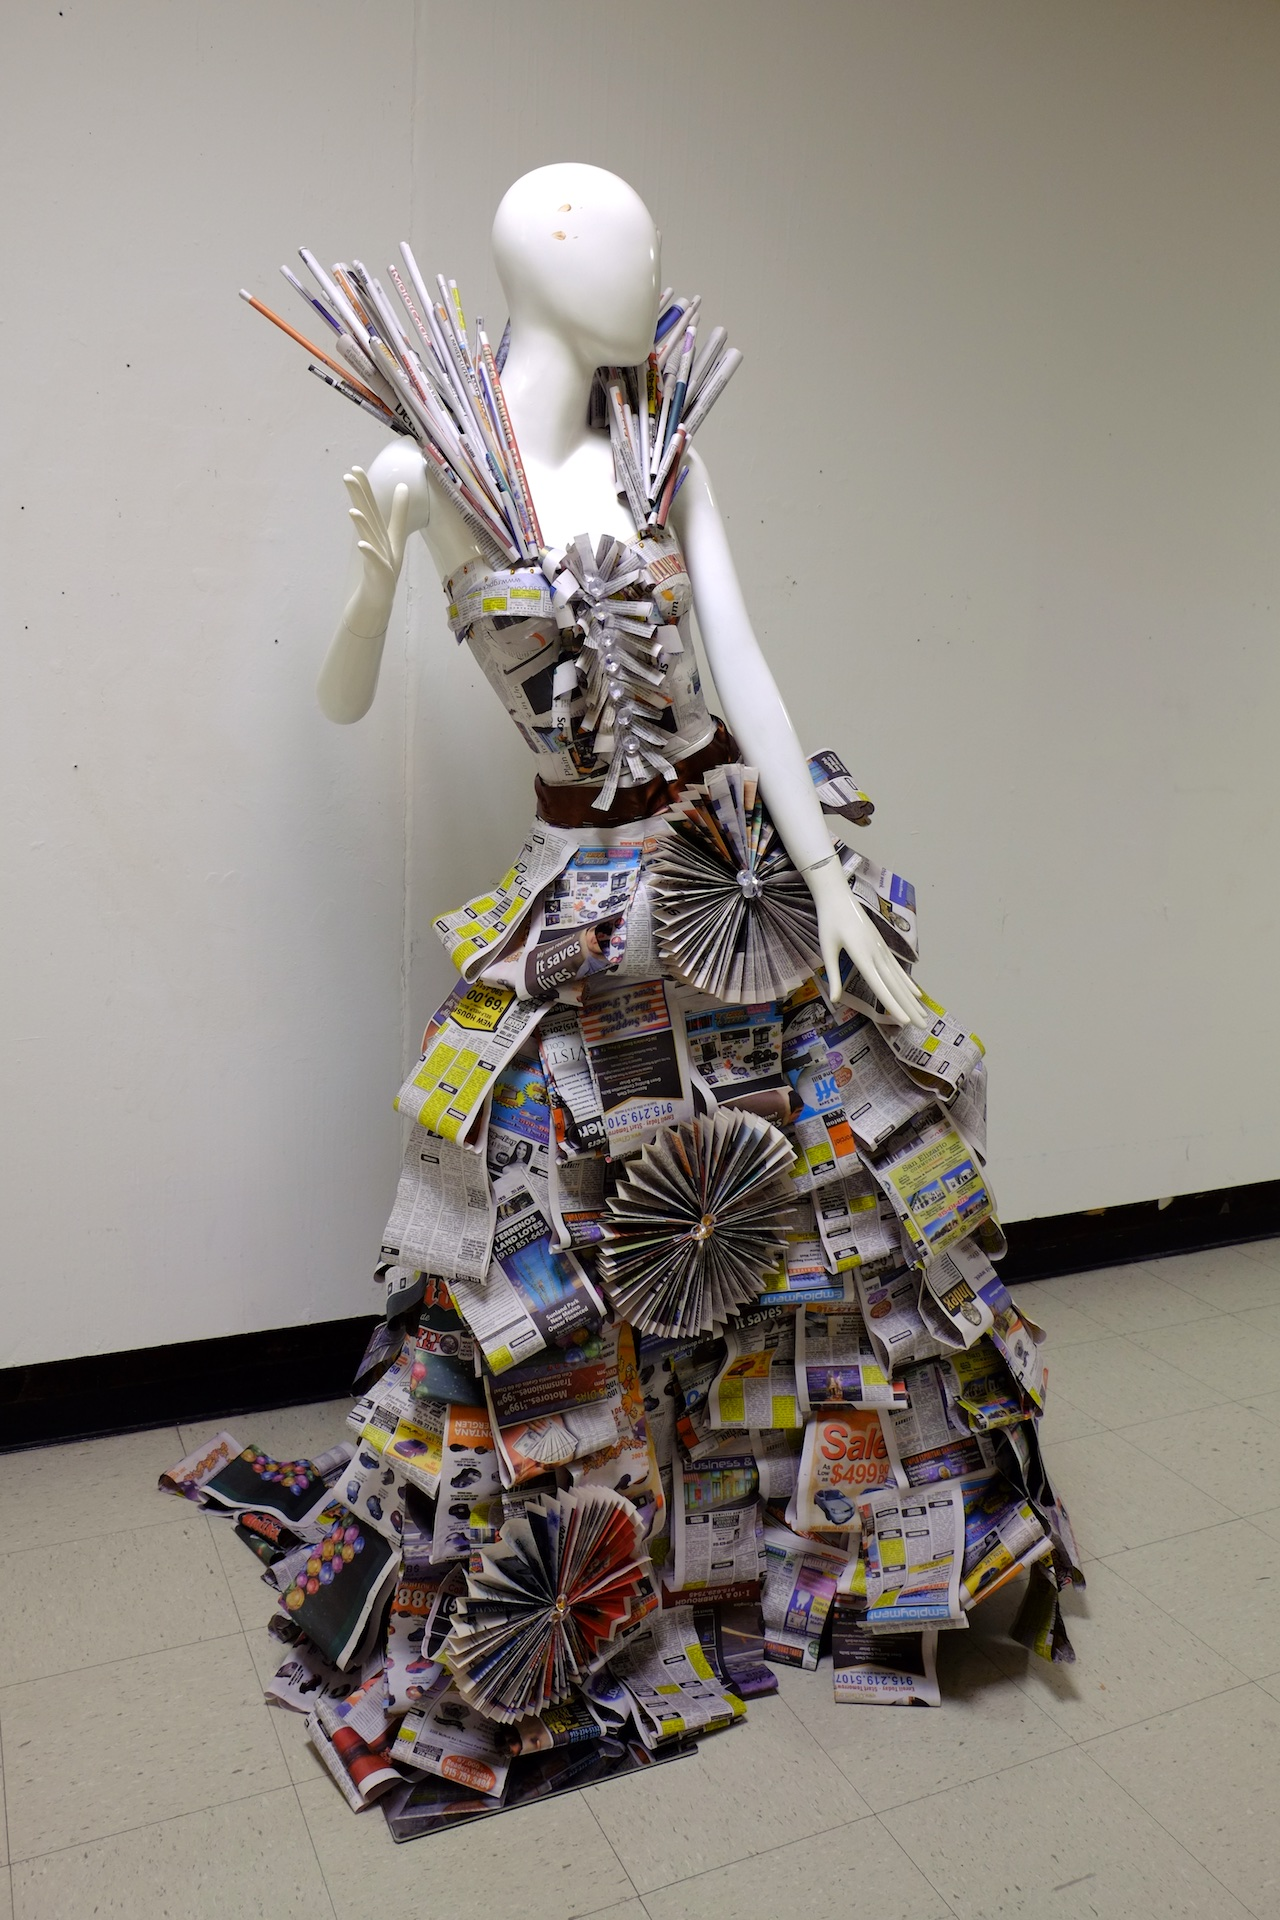 Made at University of Texas at El Paso in Introductory Sculpture, newspaper advertisements draped over dress model, 6x3x4 feet, 2015.